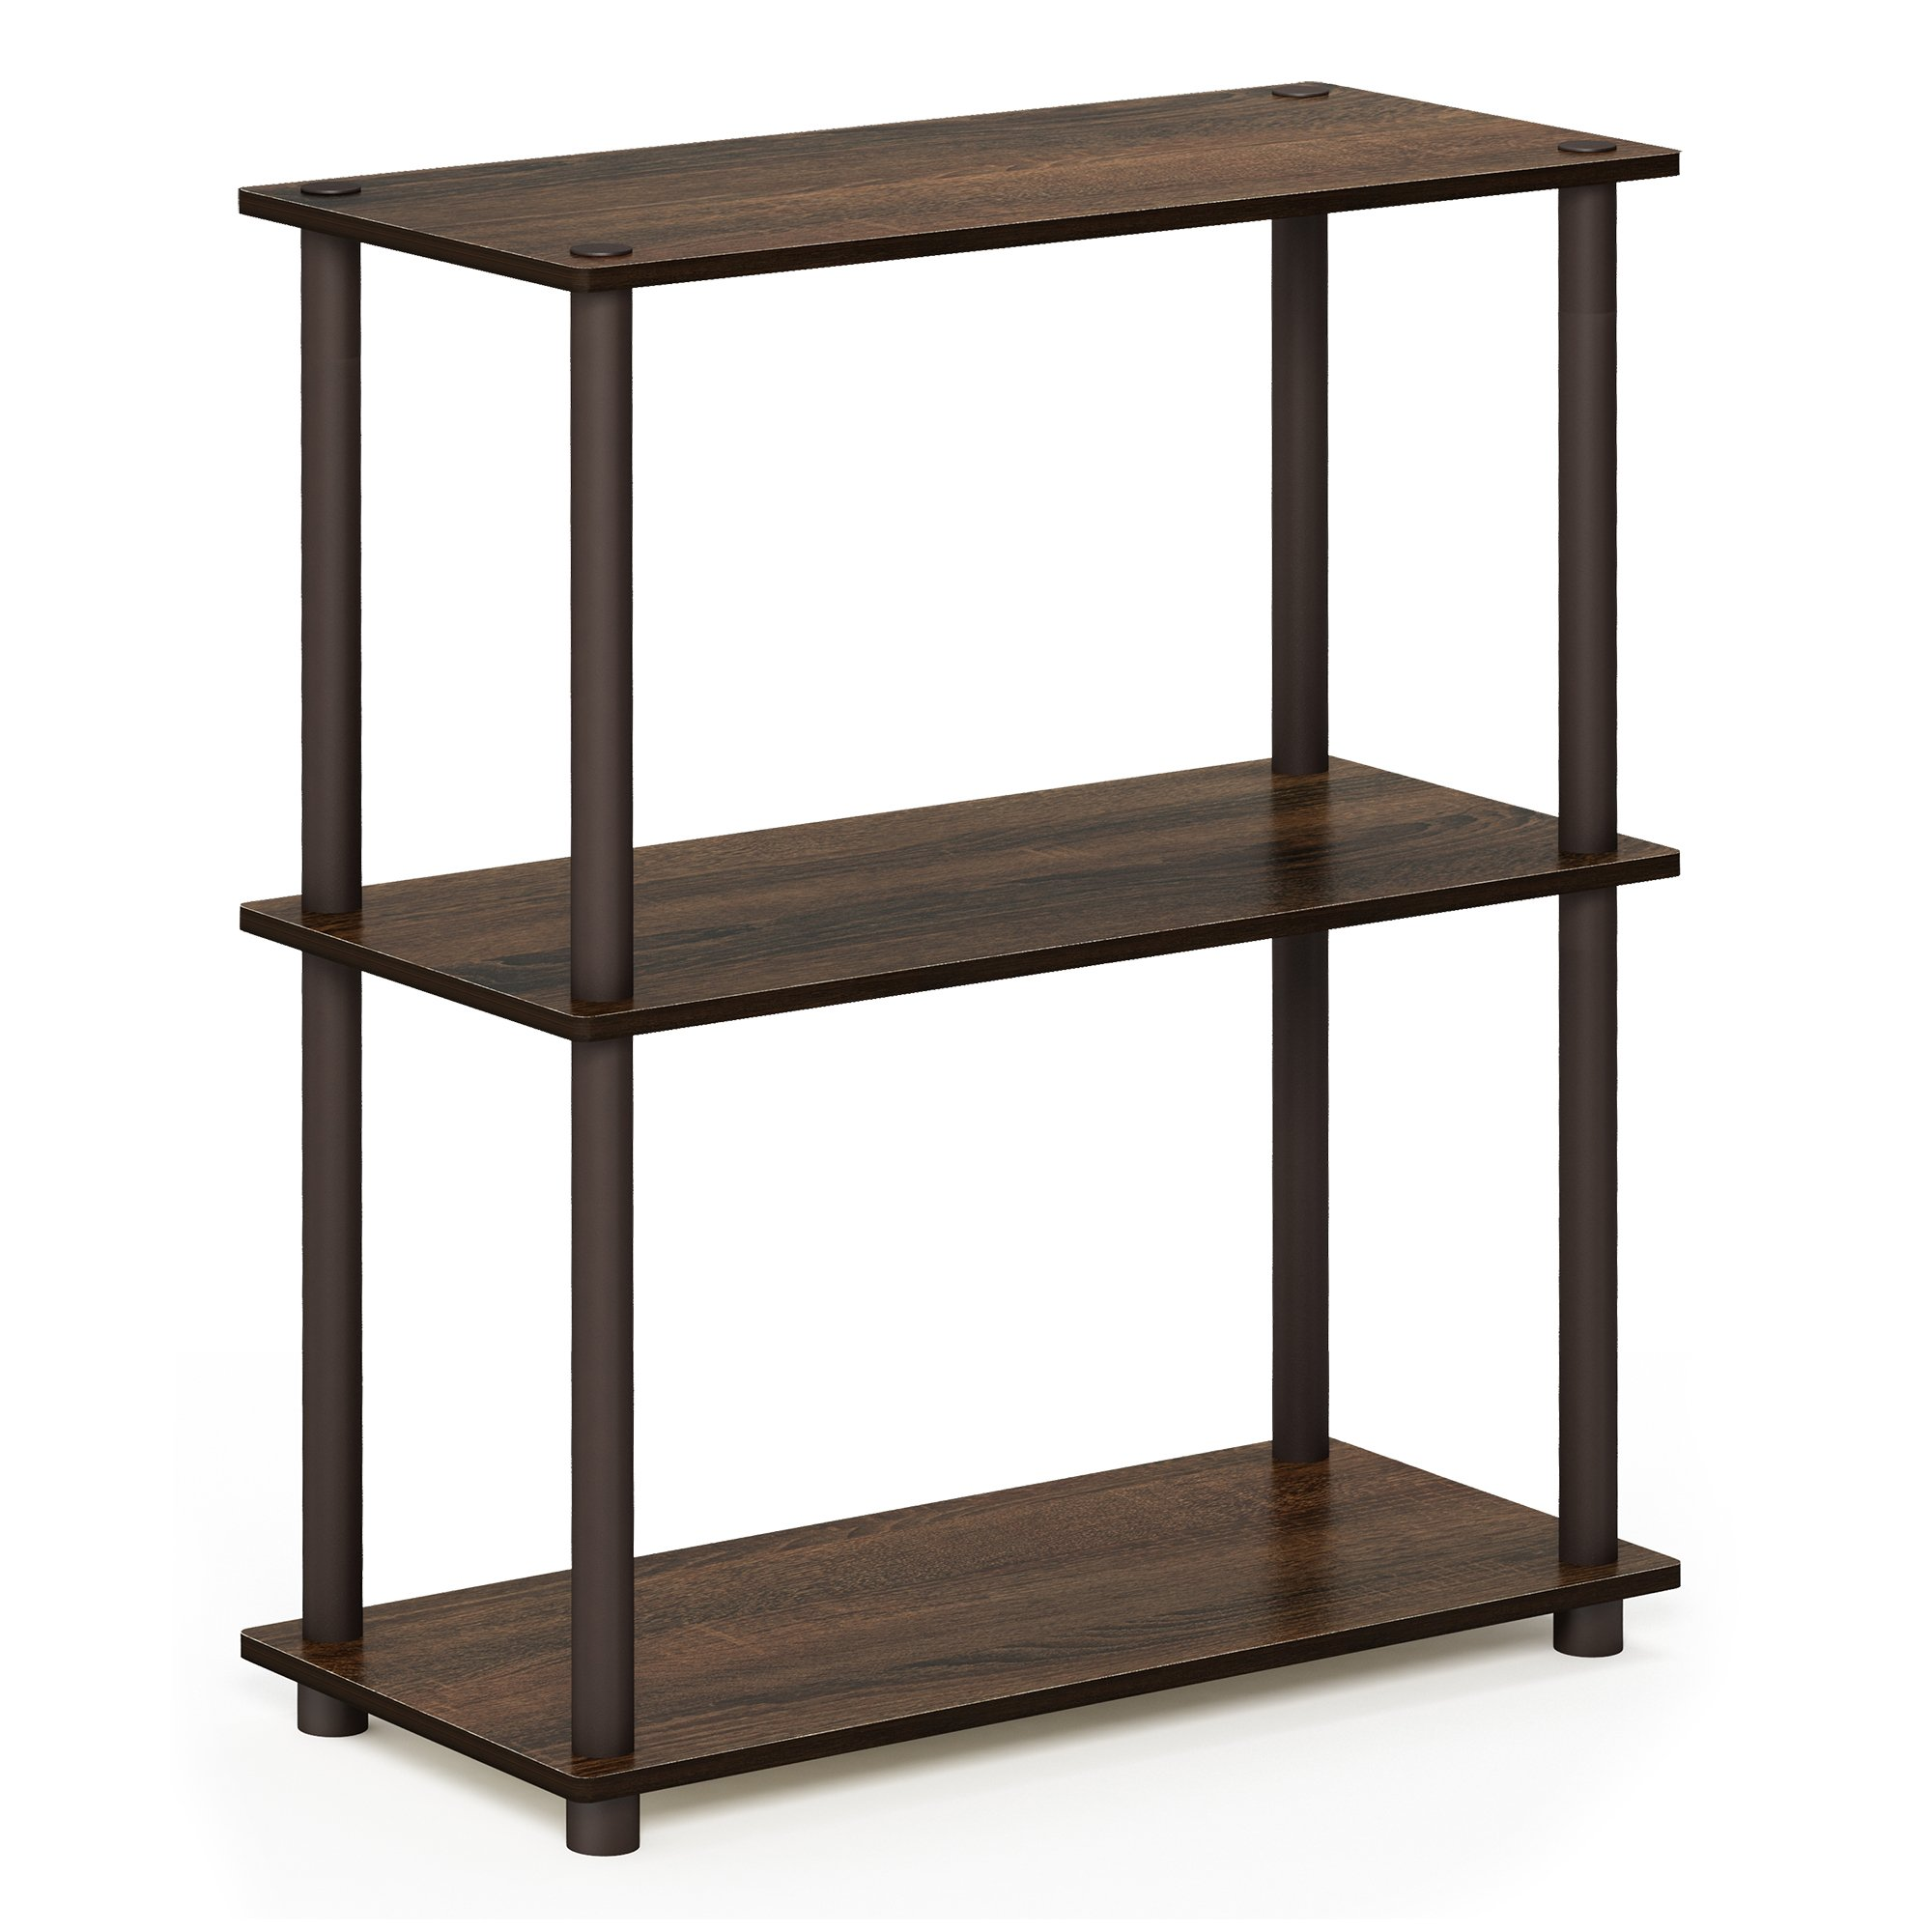 Furinno 10024WN/BR Turn-N-Tube 3 Compact Multipurpose Shelf, 3-Tier, Walnut/Brown